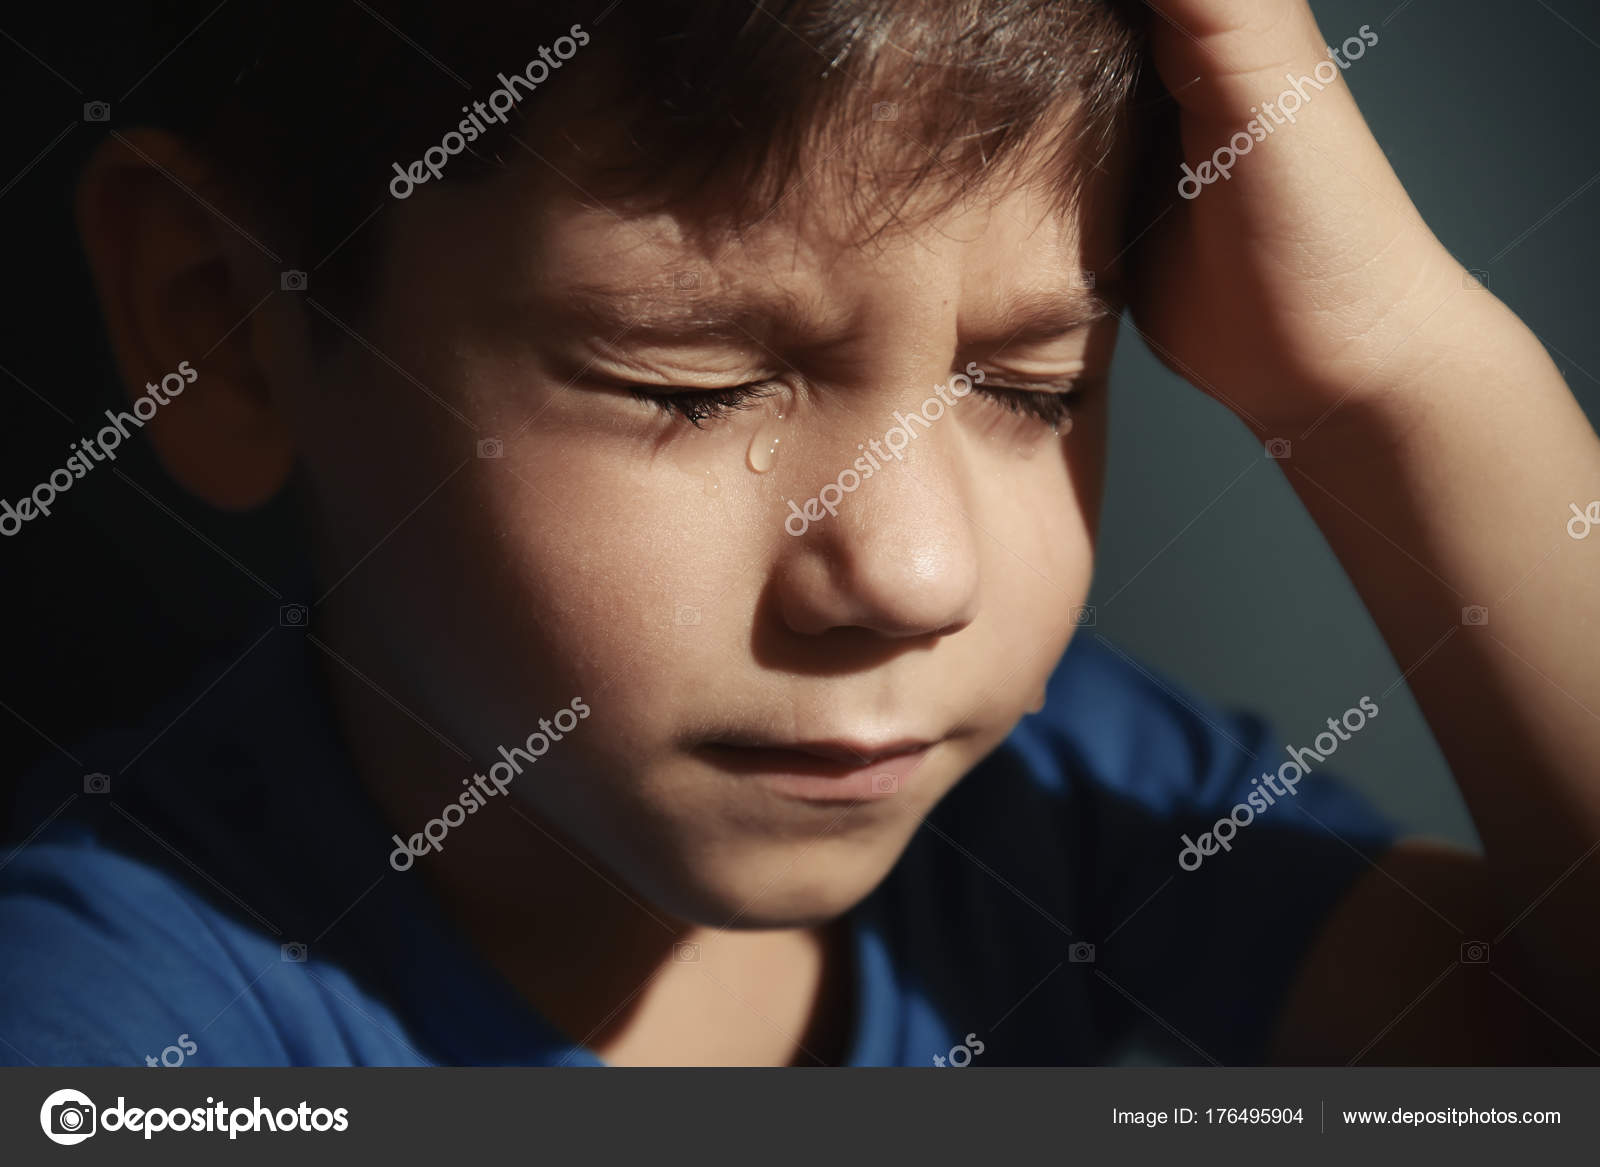 Little sad boy crying abuse of children concept stock photo